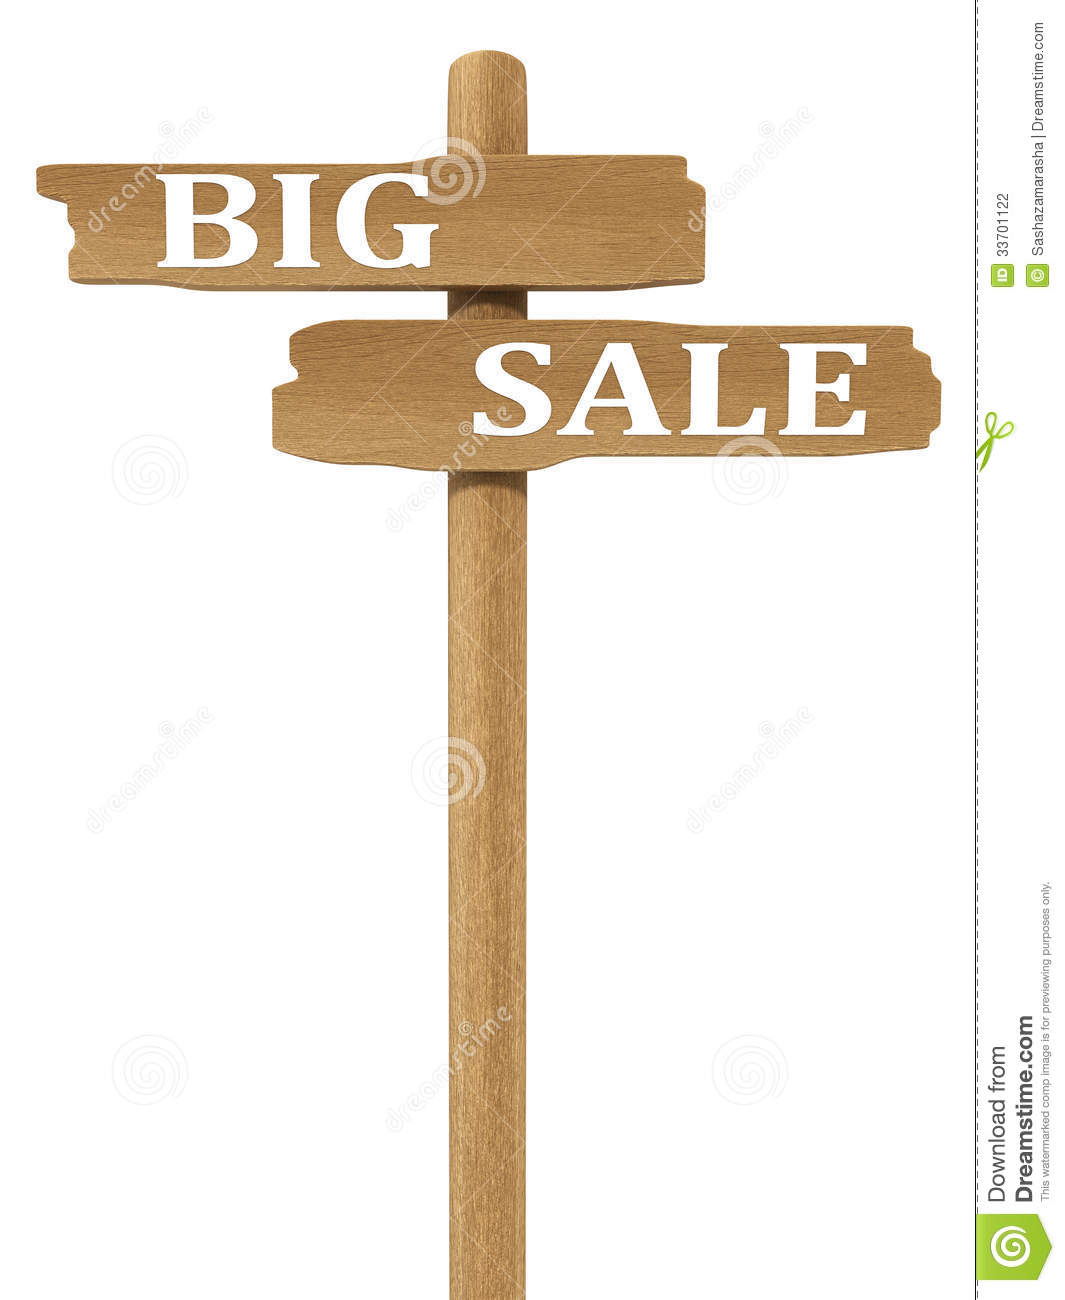 Wooden commercial road sign with SALE label text